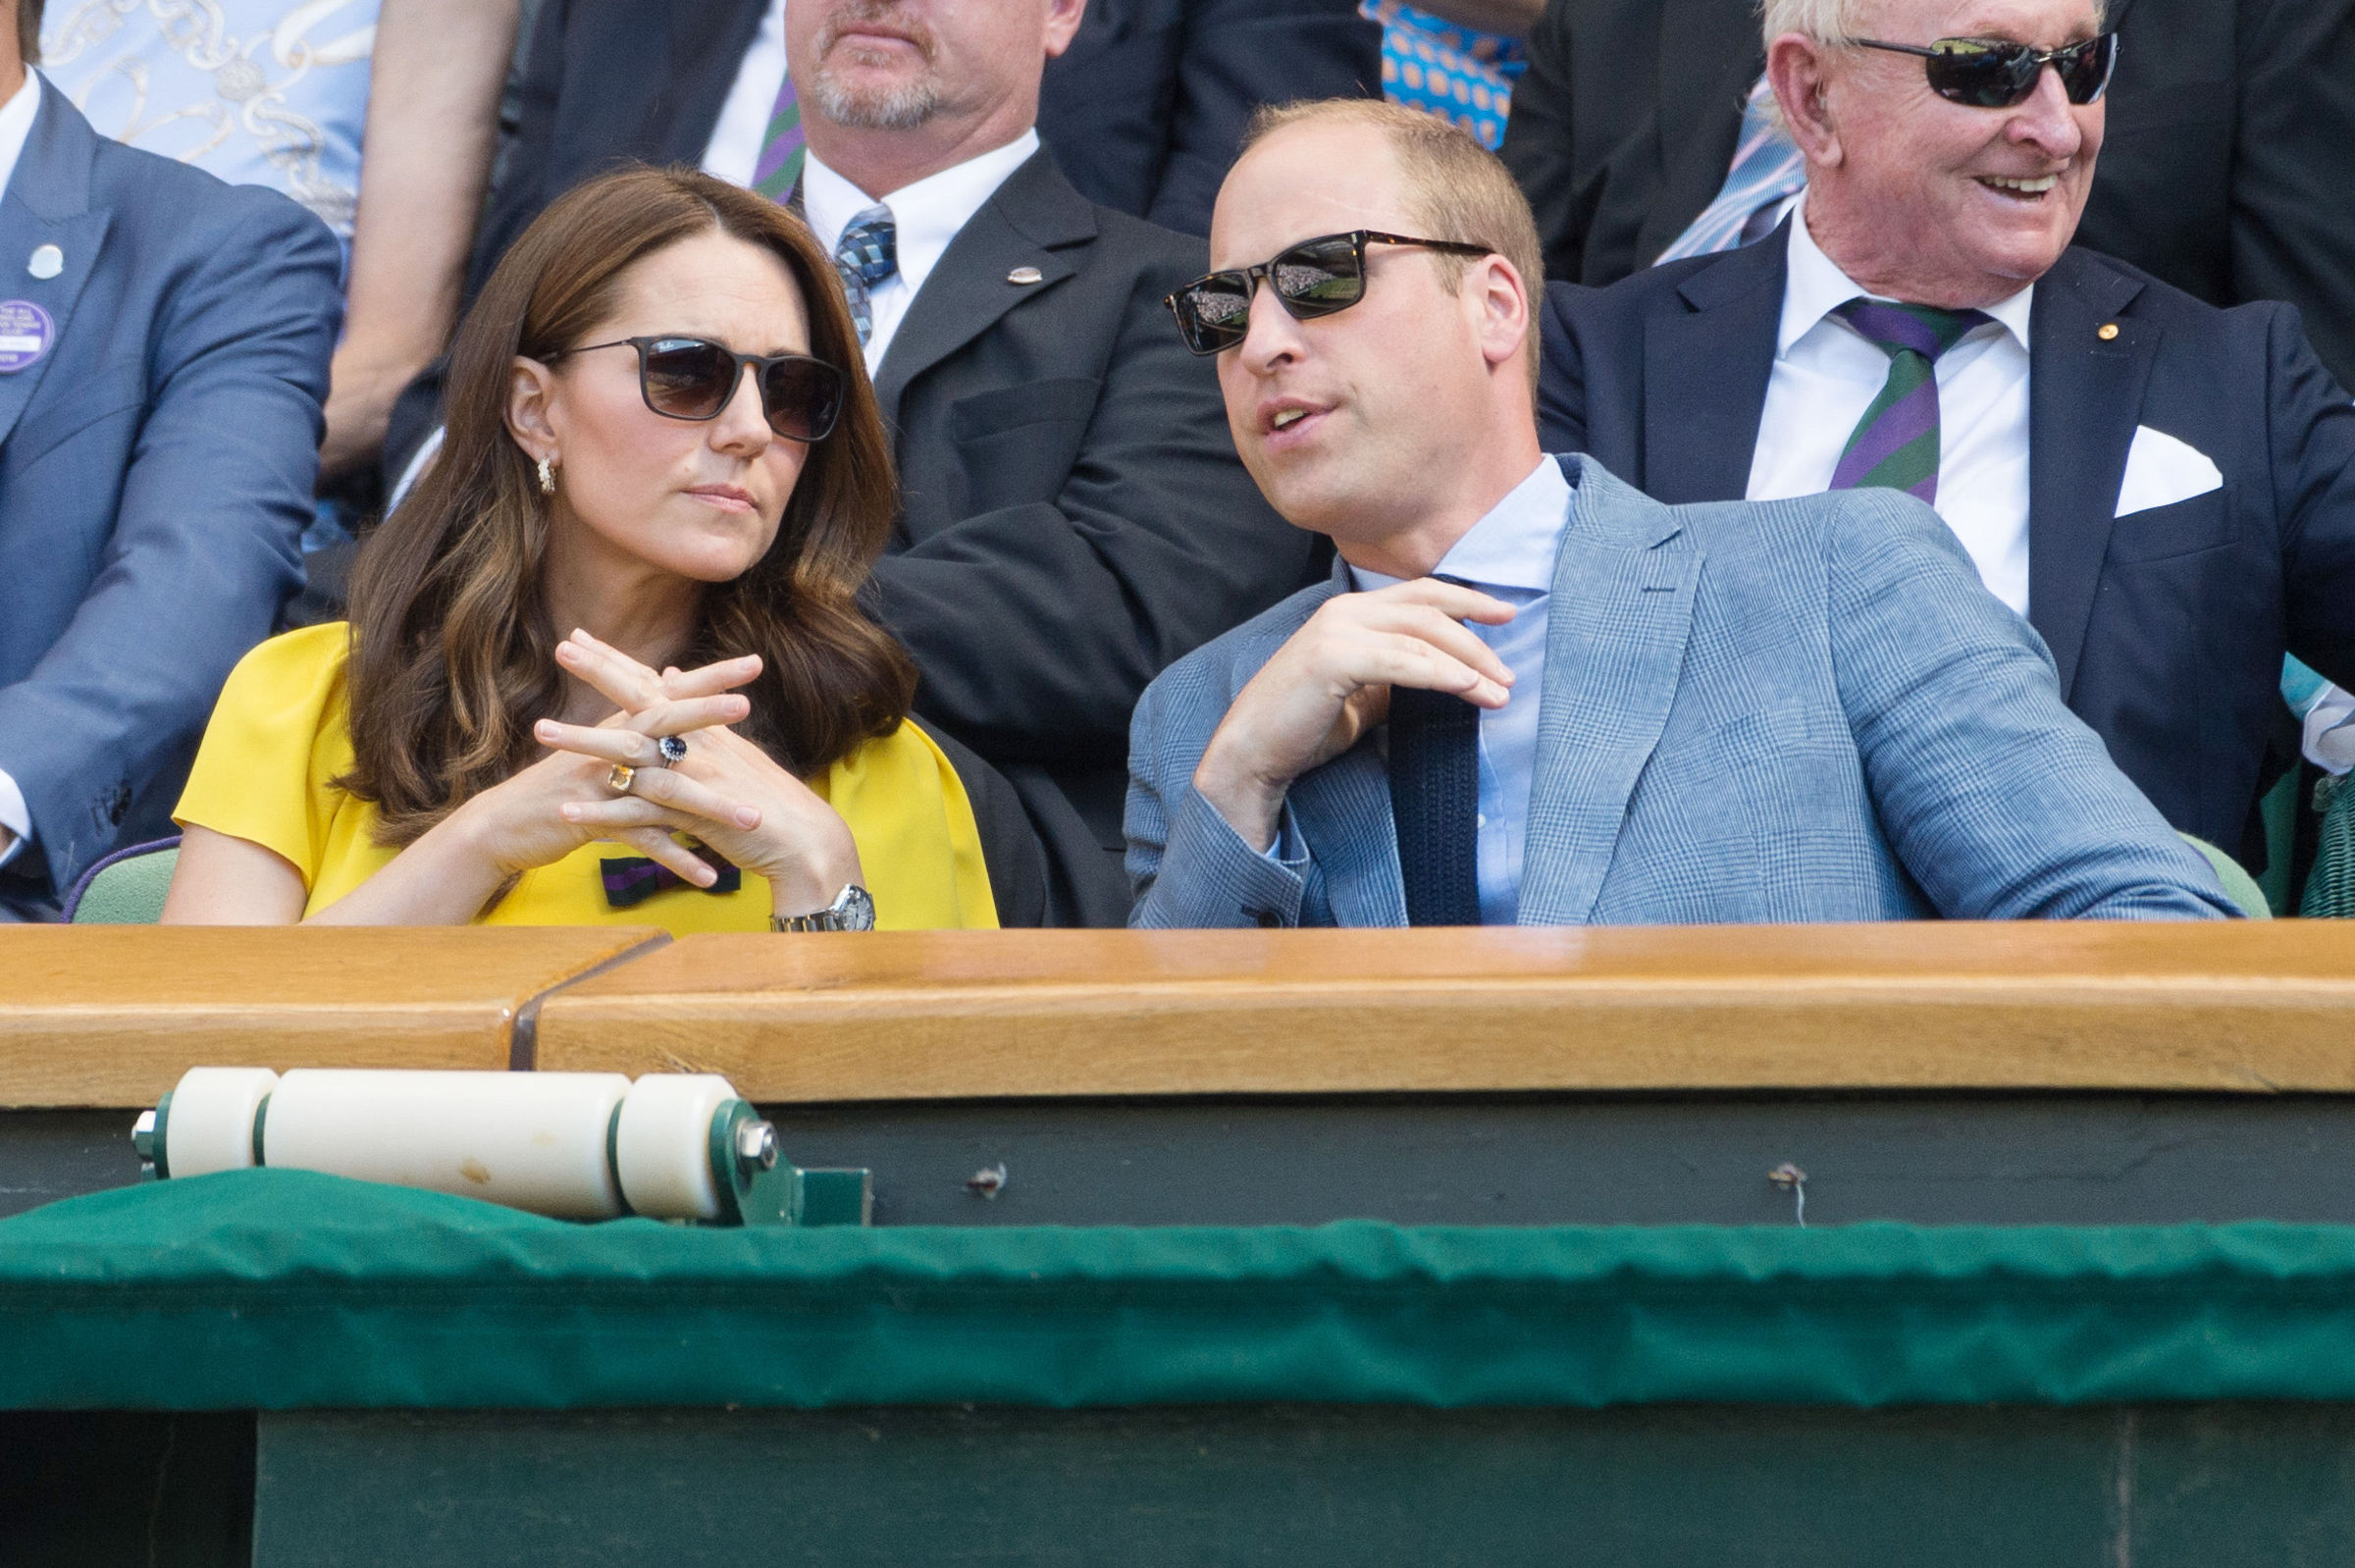 July 15, 2018 - London, United Kingdom - The mens singles finals in the royal box on the 13th day of the Wimbledon Tennis Championships 2018 held at the All England Lawn Tennis and Croquet Club. (Credit Image: ? Ray Tang via ZUMA Press)  Pictured: Catherine,Duchess of Cambridge,Prince William and Duke of Cambridge Ref: SPL5010143 150718 NON-EXCLUSIVE Picture by: SplashNews.com  Splash News and Pictures Los Angeles: 310-821-2666 New York: 212-619-2666 London: 0207 644 7656 Milan: +39 02 4399 8577 Sydney: +61 02 9240 7700 photodesk@splashnews.com  World Rights, No Argentina Rights, No Belgium Rights, No China Rights, No Czechia Rights, No Finland Rights, No Hungary Rights, No Japan Rights, No Mexico Rights, No Netherlands Rights, No Norway Rights, No Peru Rights, No Portugal Rights, No Slovenia Rights, No Sweden Rights, No Switzerland Rights, No Taiwan Rights